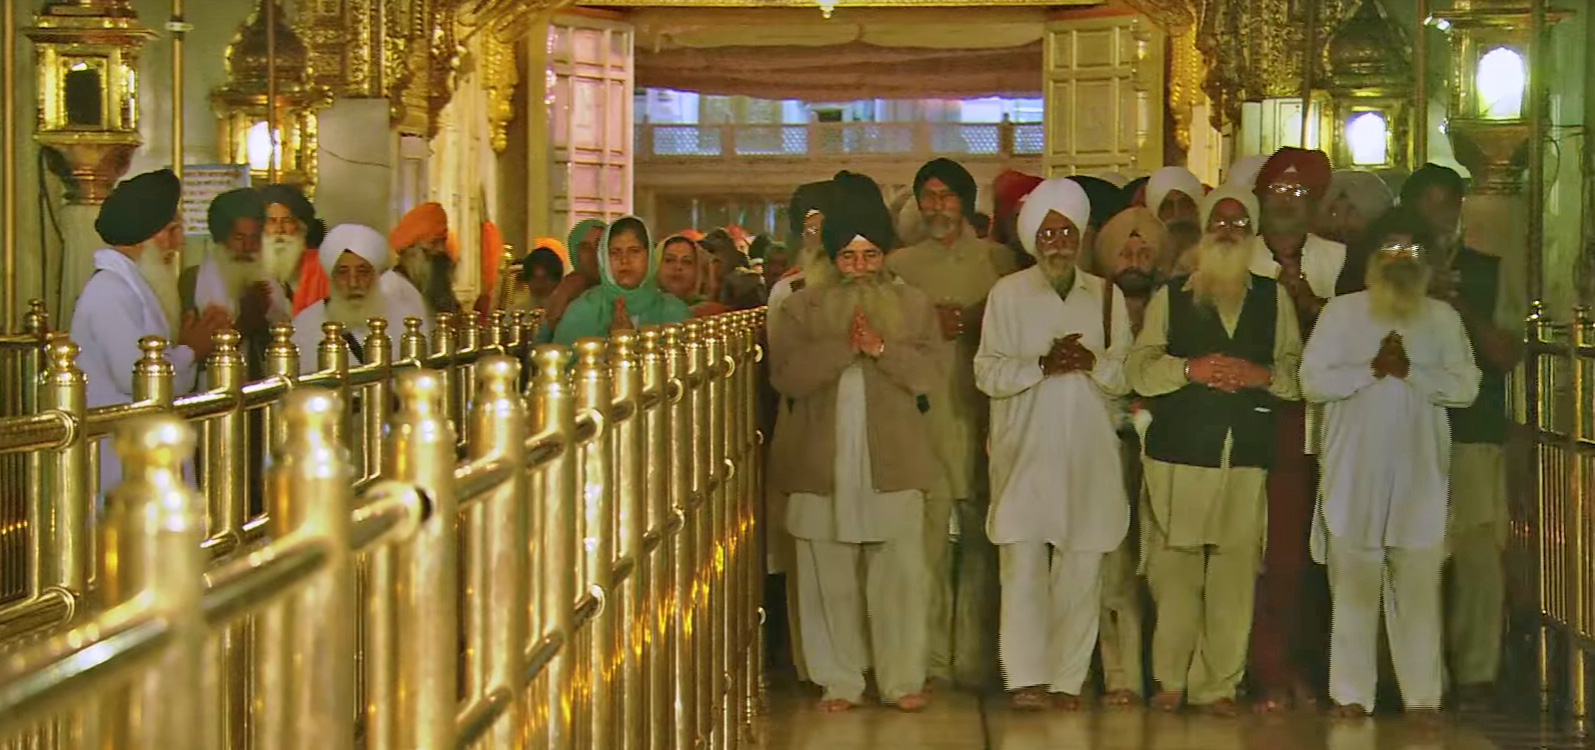 Image result for gurudwara inside the temple complex amritsar